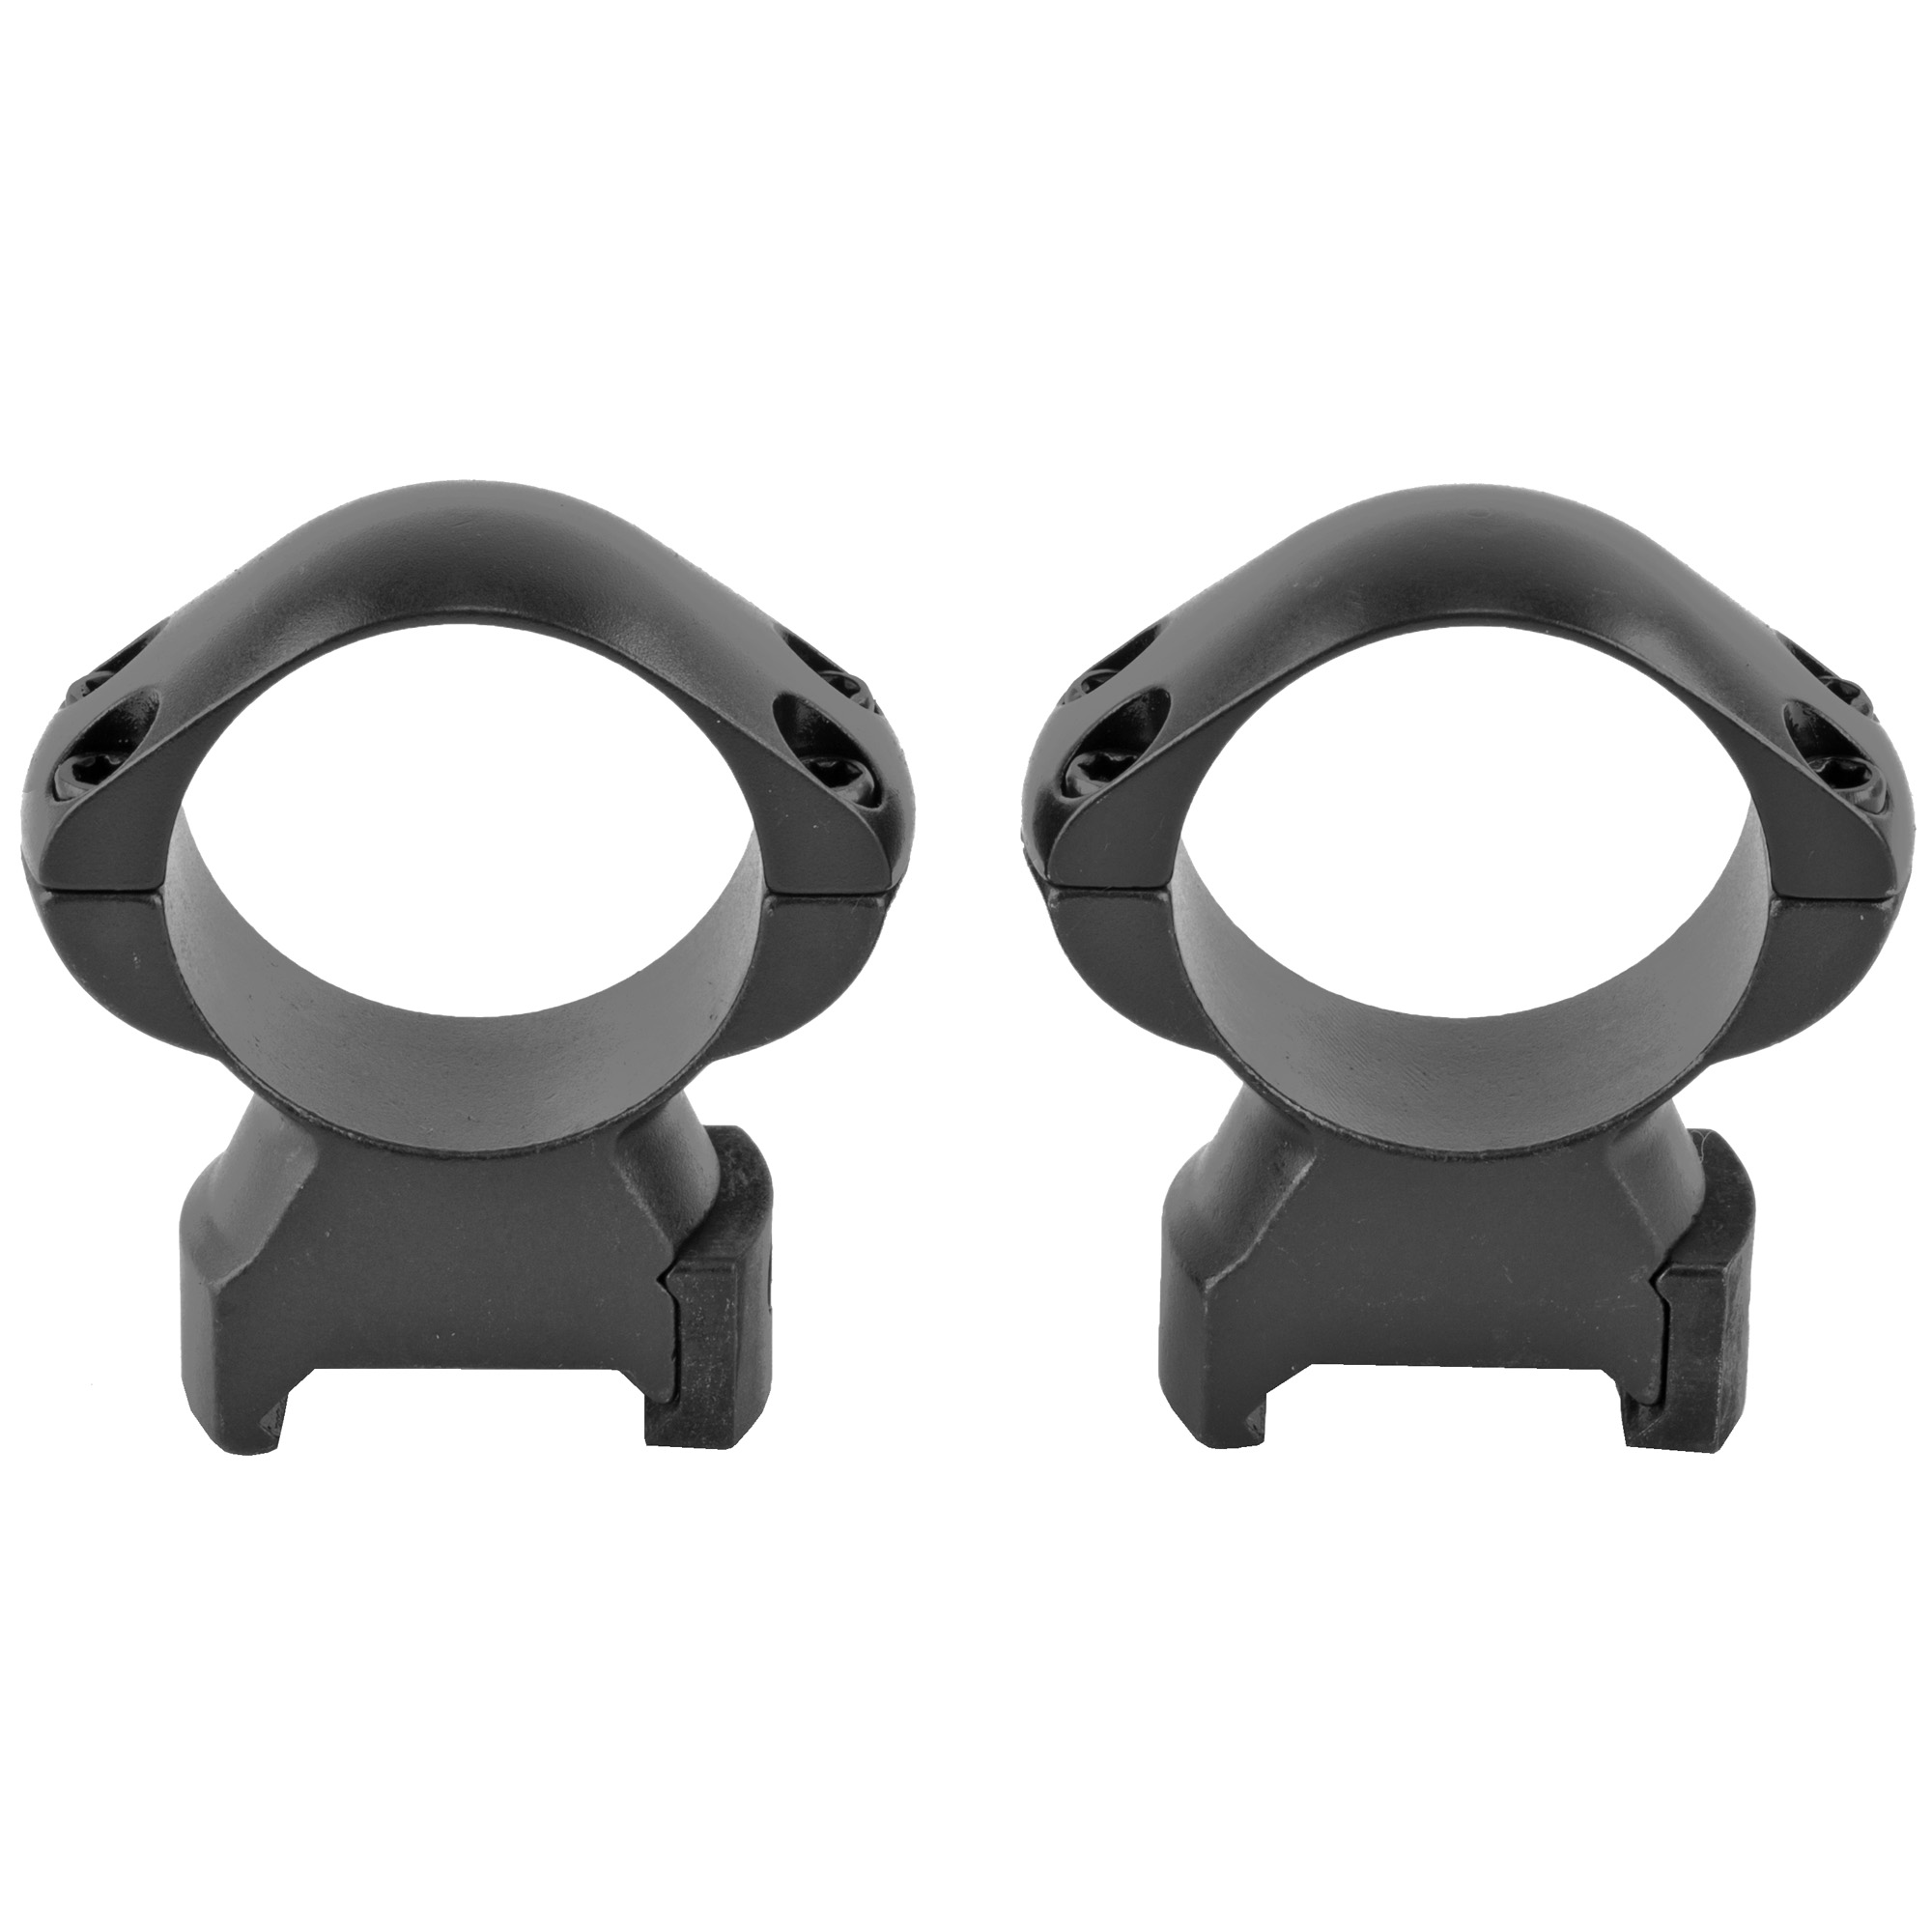 """Weaver's popular Grand Slam Rings recently went under the knife for an impressive"""" sleek"""" modern new look. The four-hole design with Torx screws adds gripping strength and added security. Plus"""" Weaver's legendary cross-lock design provides the ultimate in scope lock-down. Made of solid steel"""" these rings stand strong against aggressive recoil. To top it off"""" Weaver's newly-designed Grand Slam Rings are proudly made to exact tolerances in the U.S.A."""